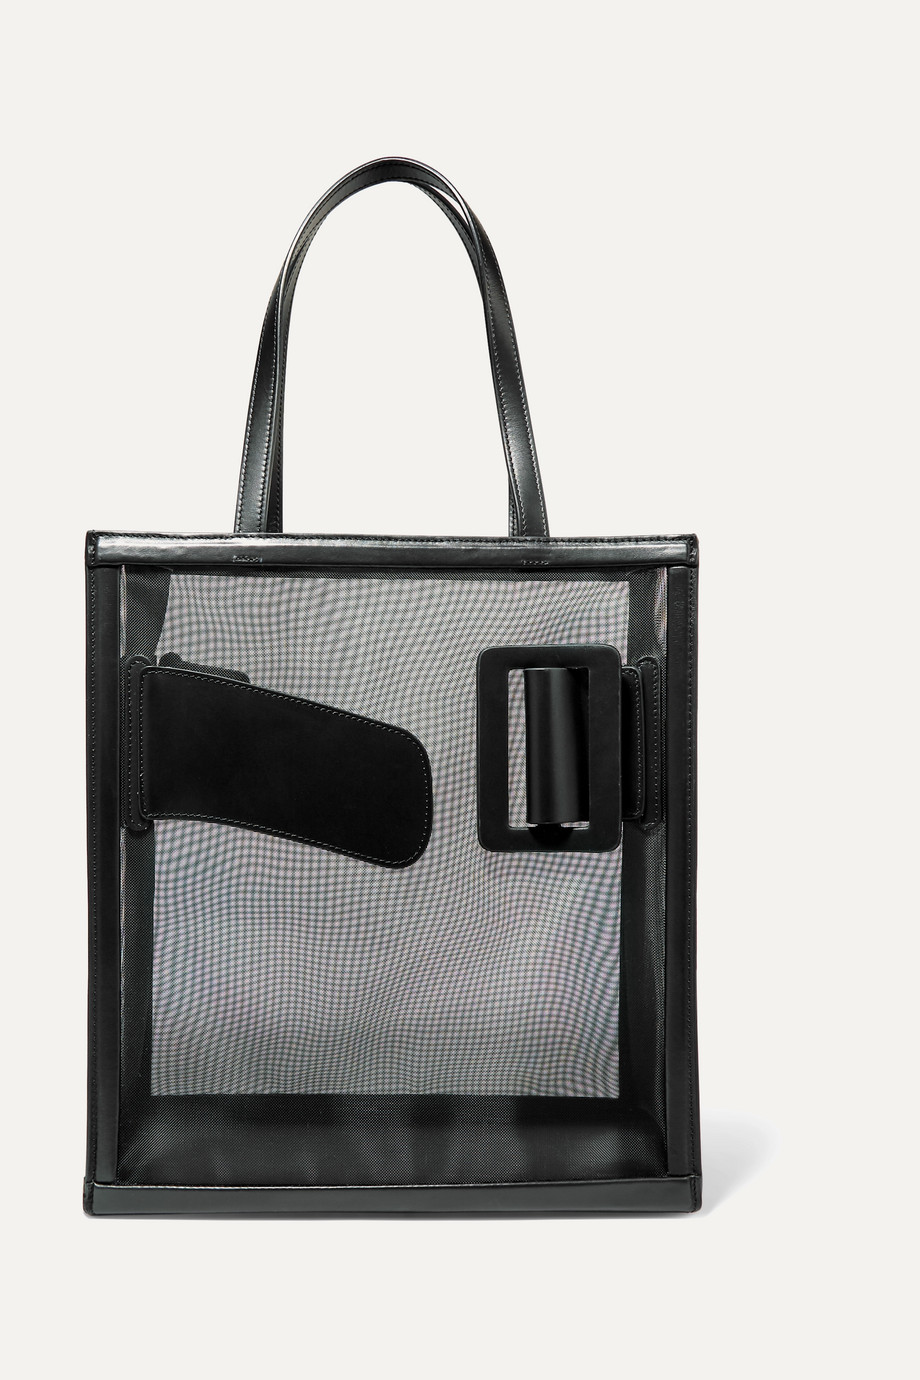 BOYY Frame buckled leather and mesh tote